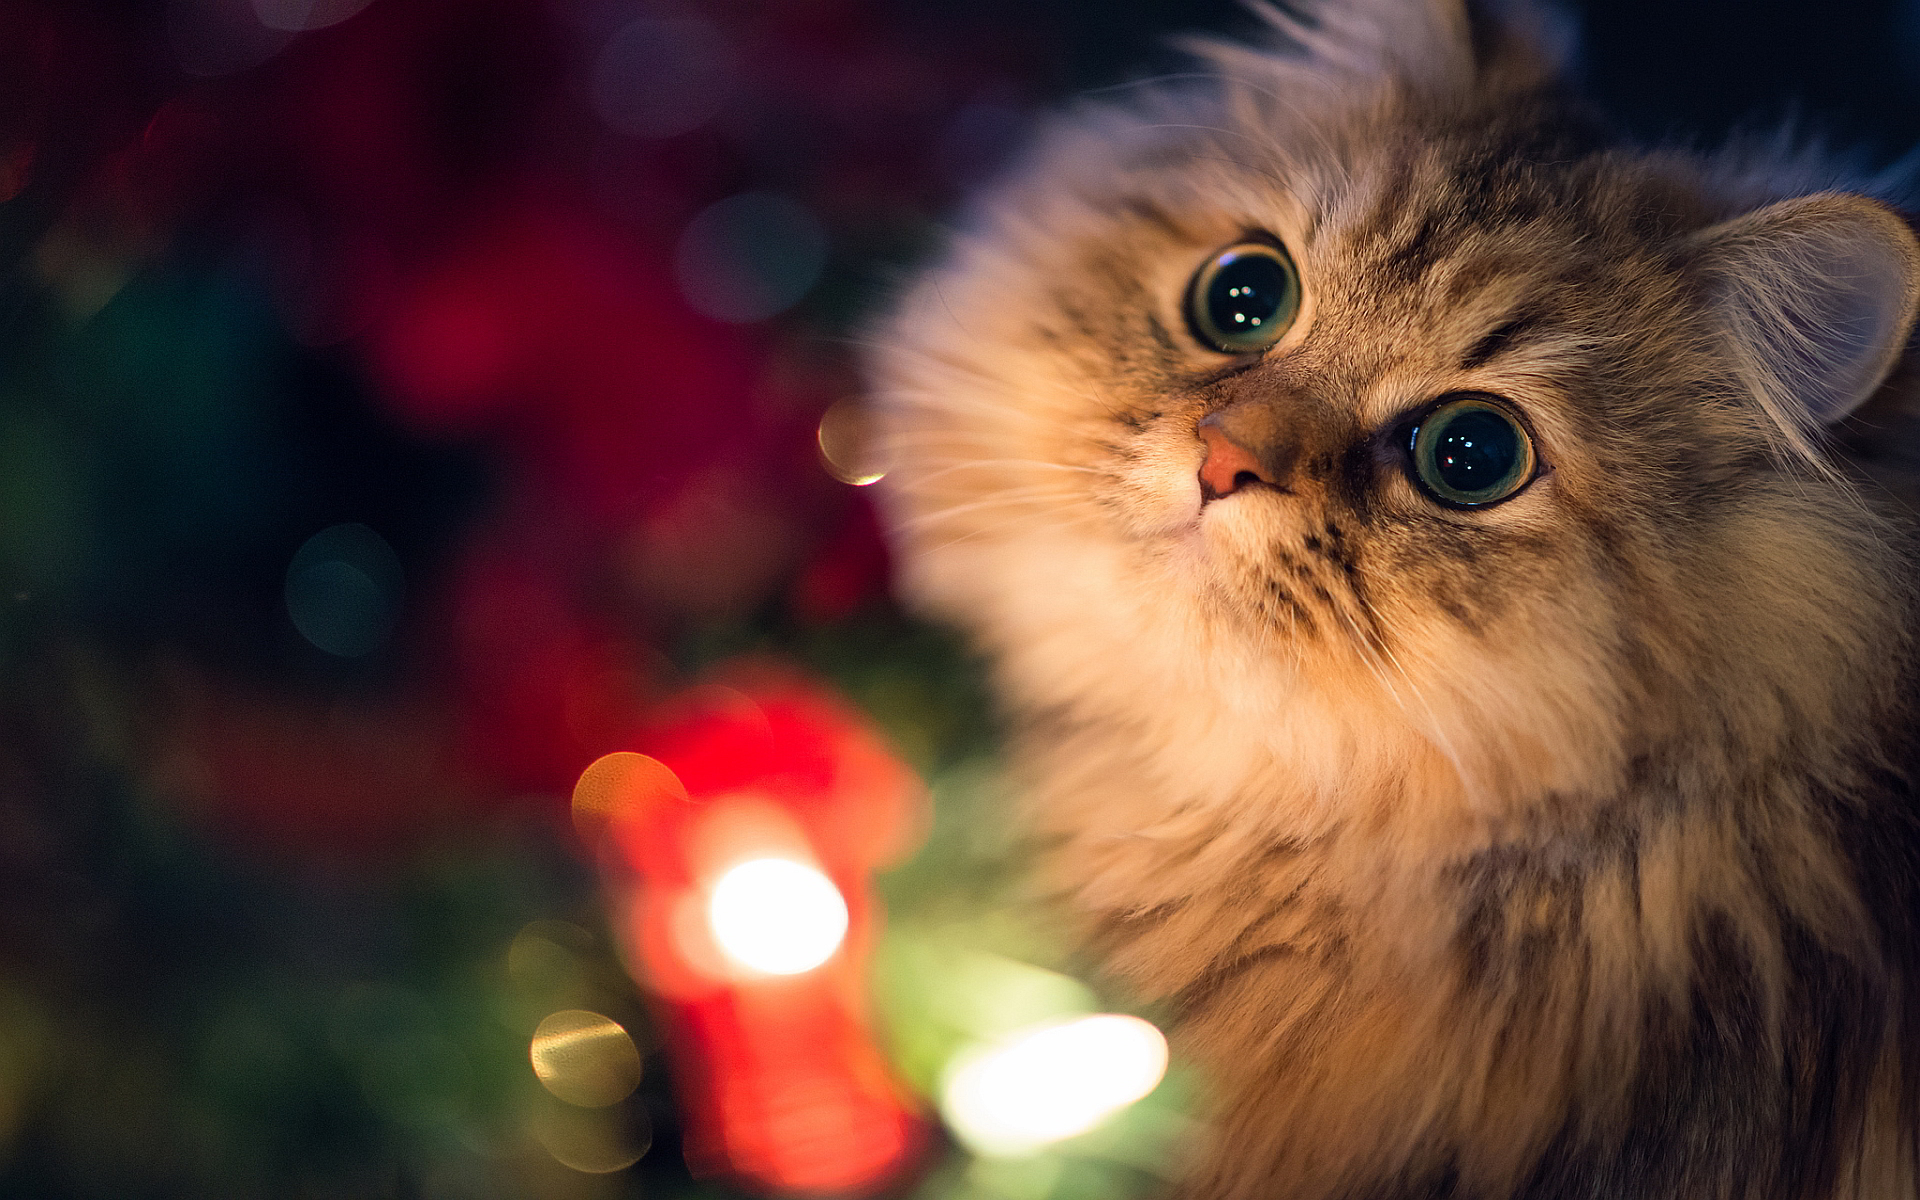 Christmas Sats Wallpapers High Quality Download Free